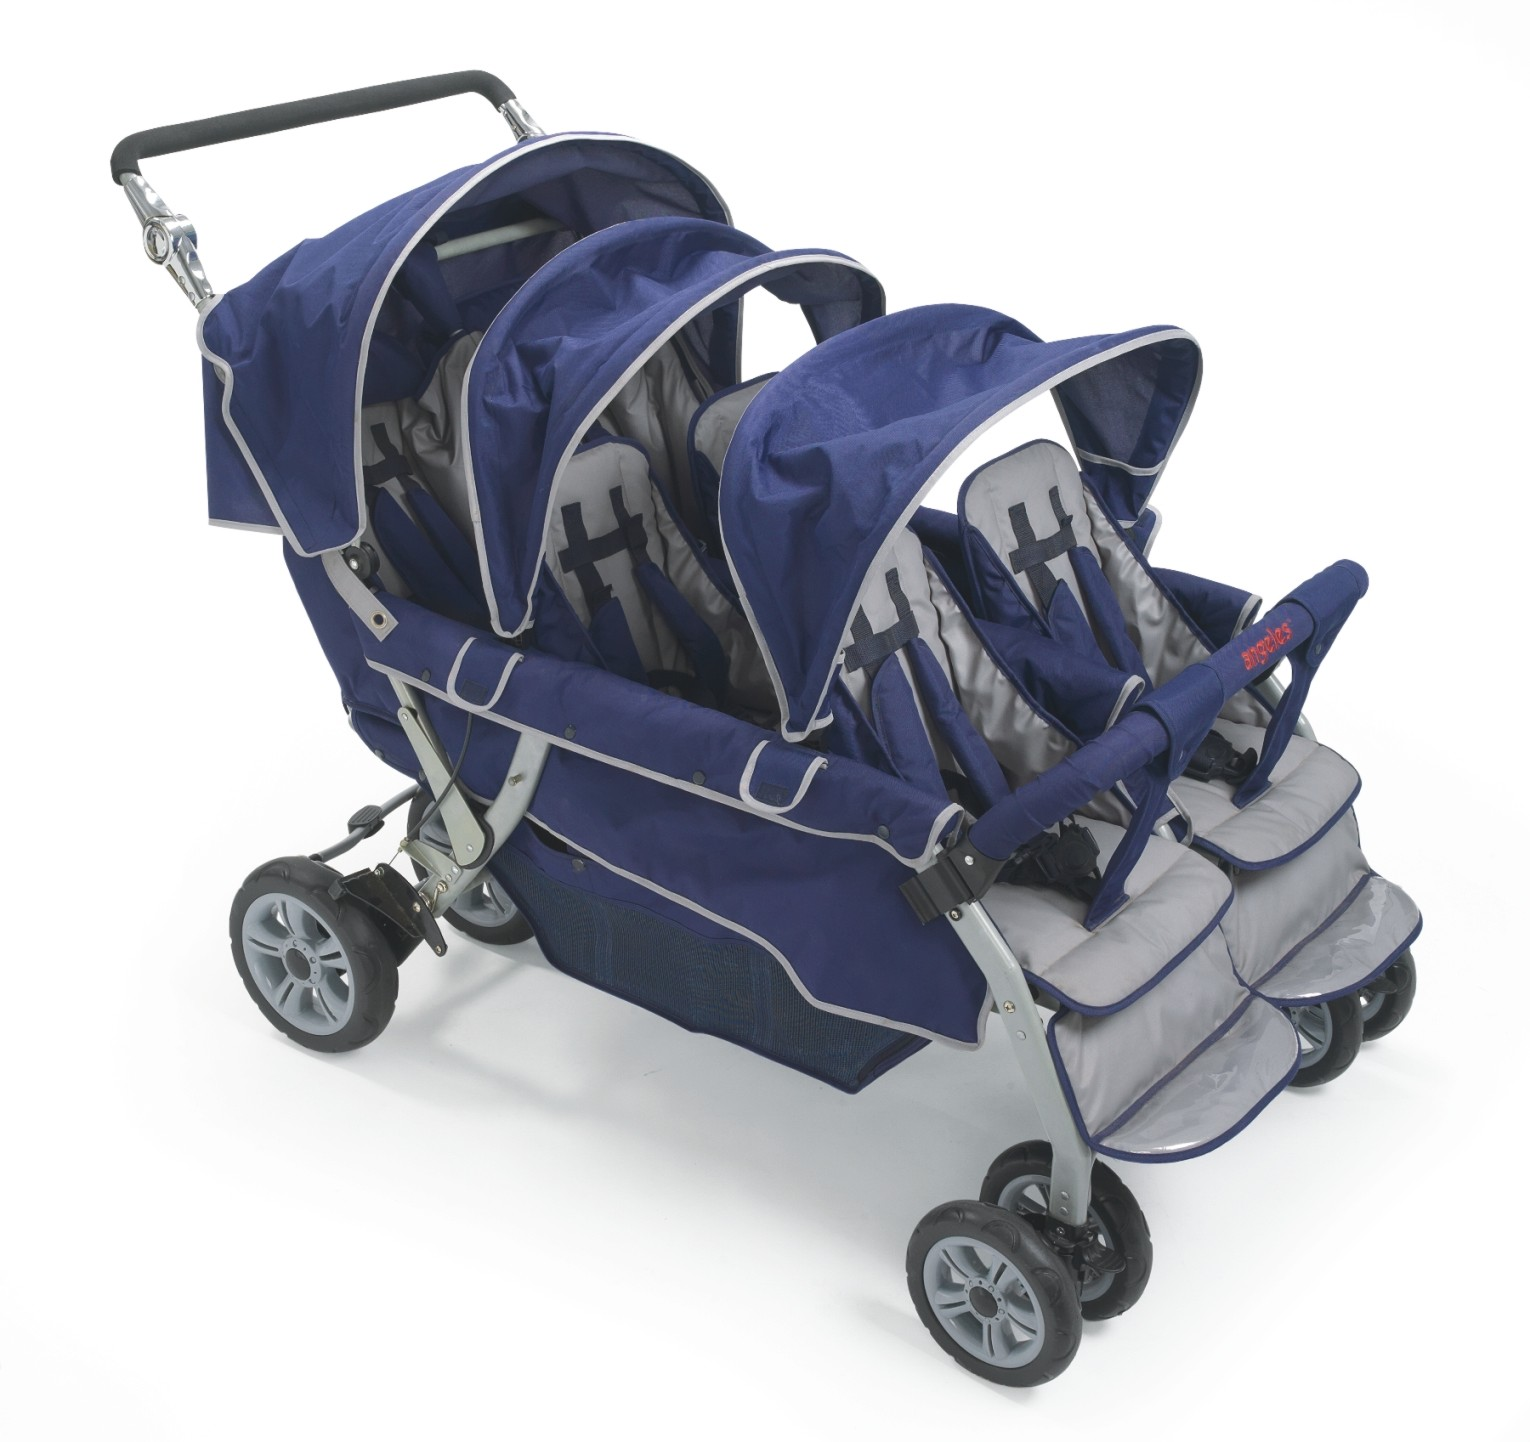 Baby Stroller And Car Seat All In One